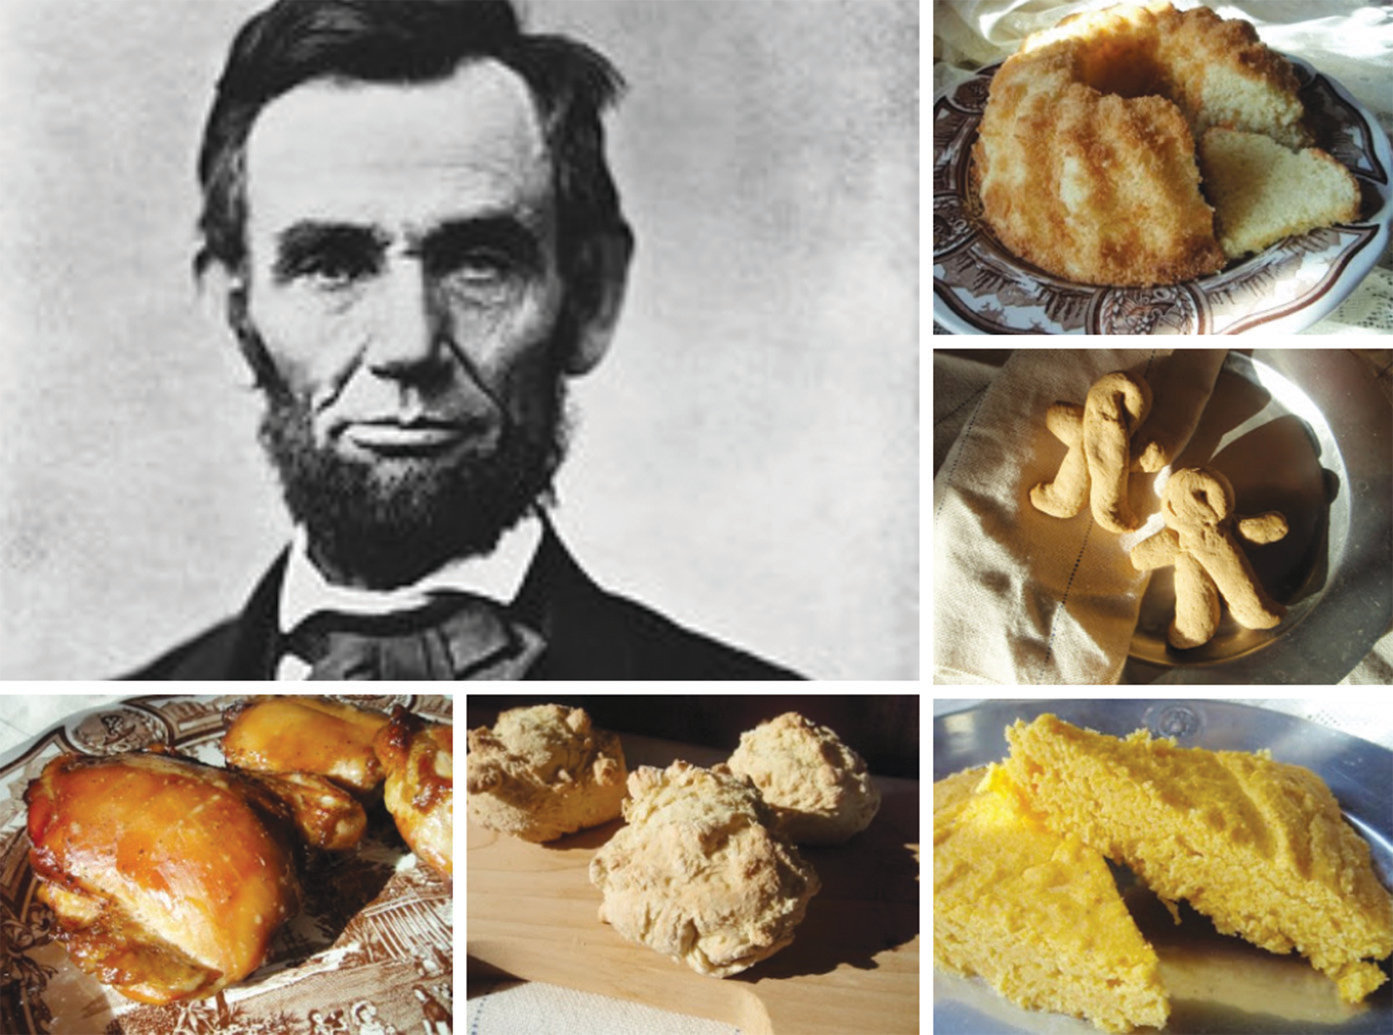 Some of the foods Abraham Lincoln probably ate include, clockwise from top right, French almond cake, gingerbread men, cornbread, biscuits and chicken.